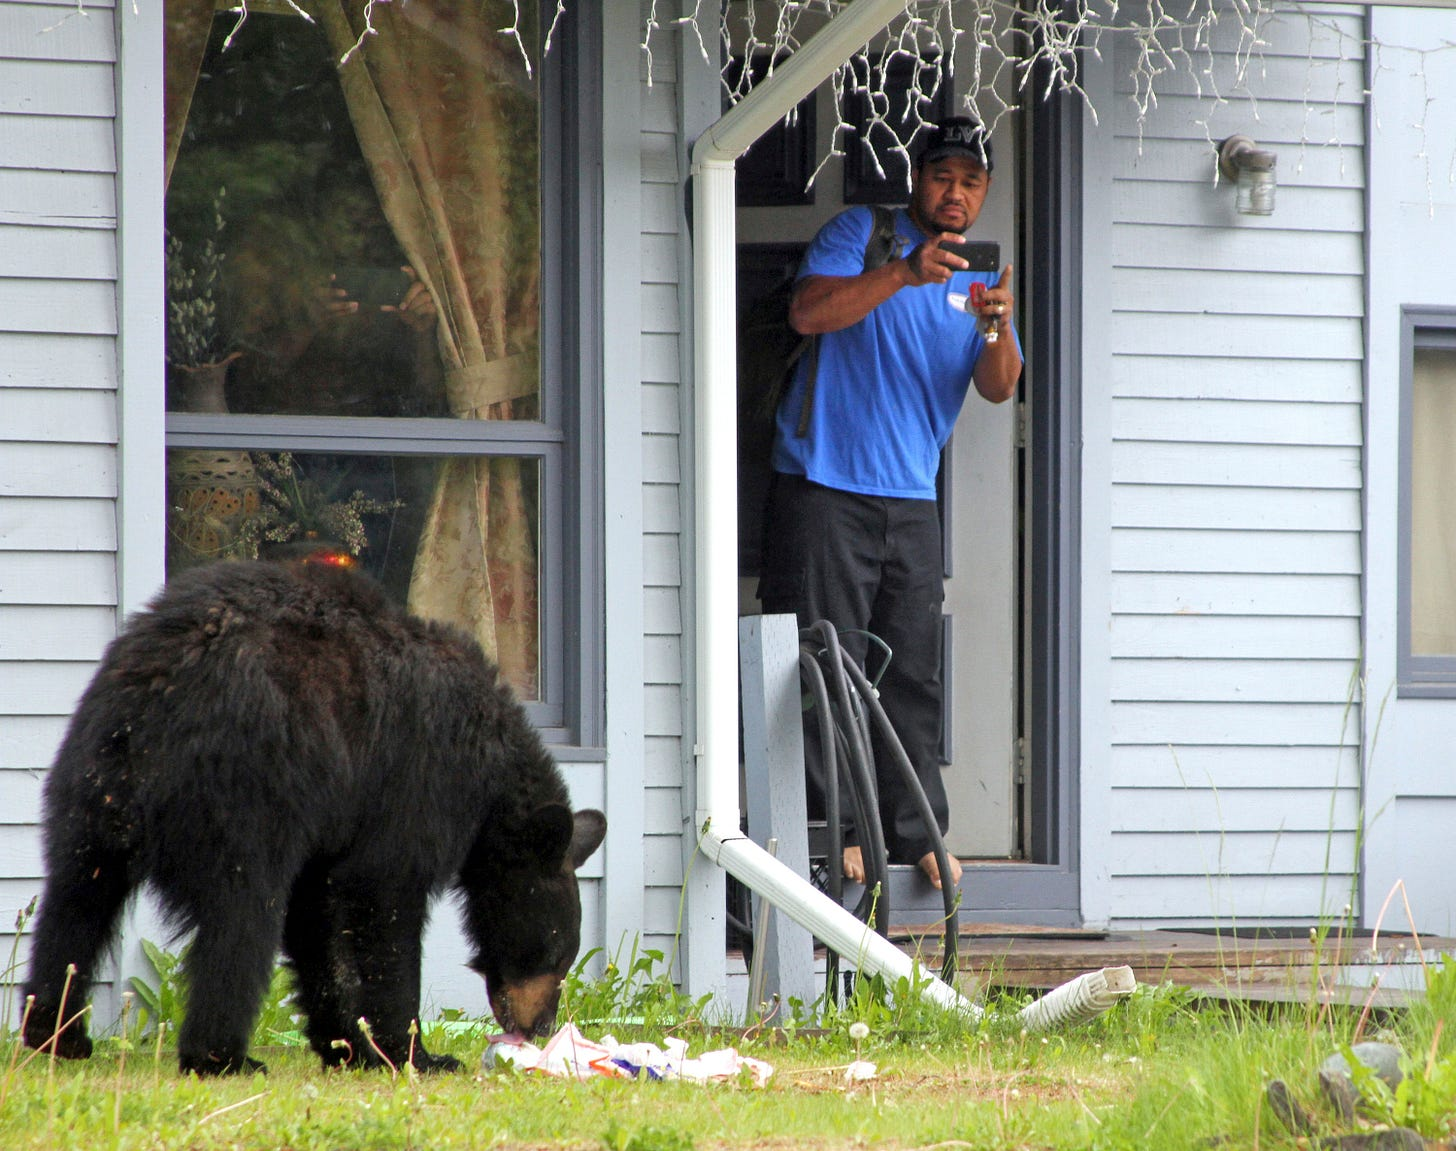 Small-Town New Hampshire's Battle with Bears and Liberty